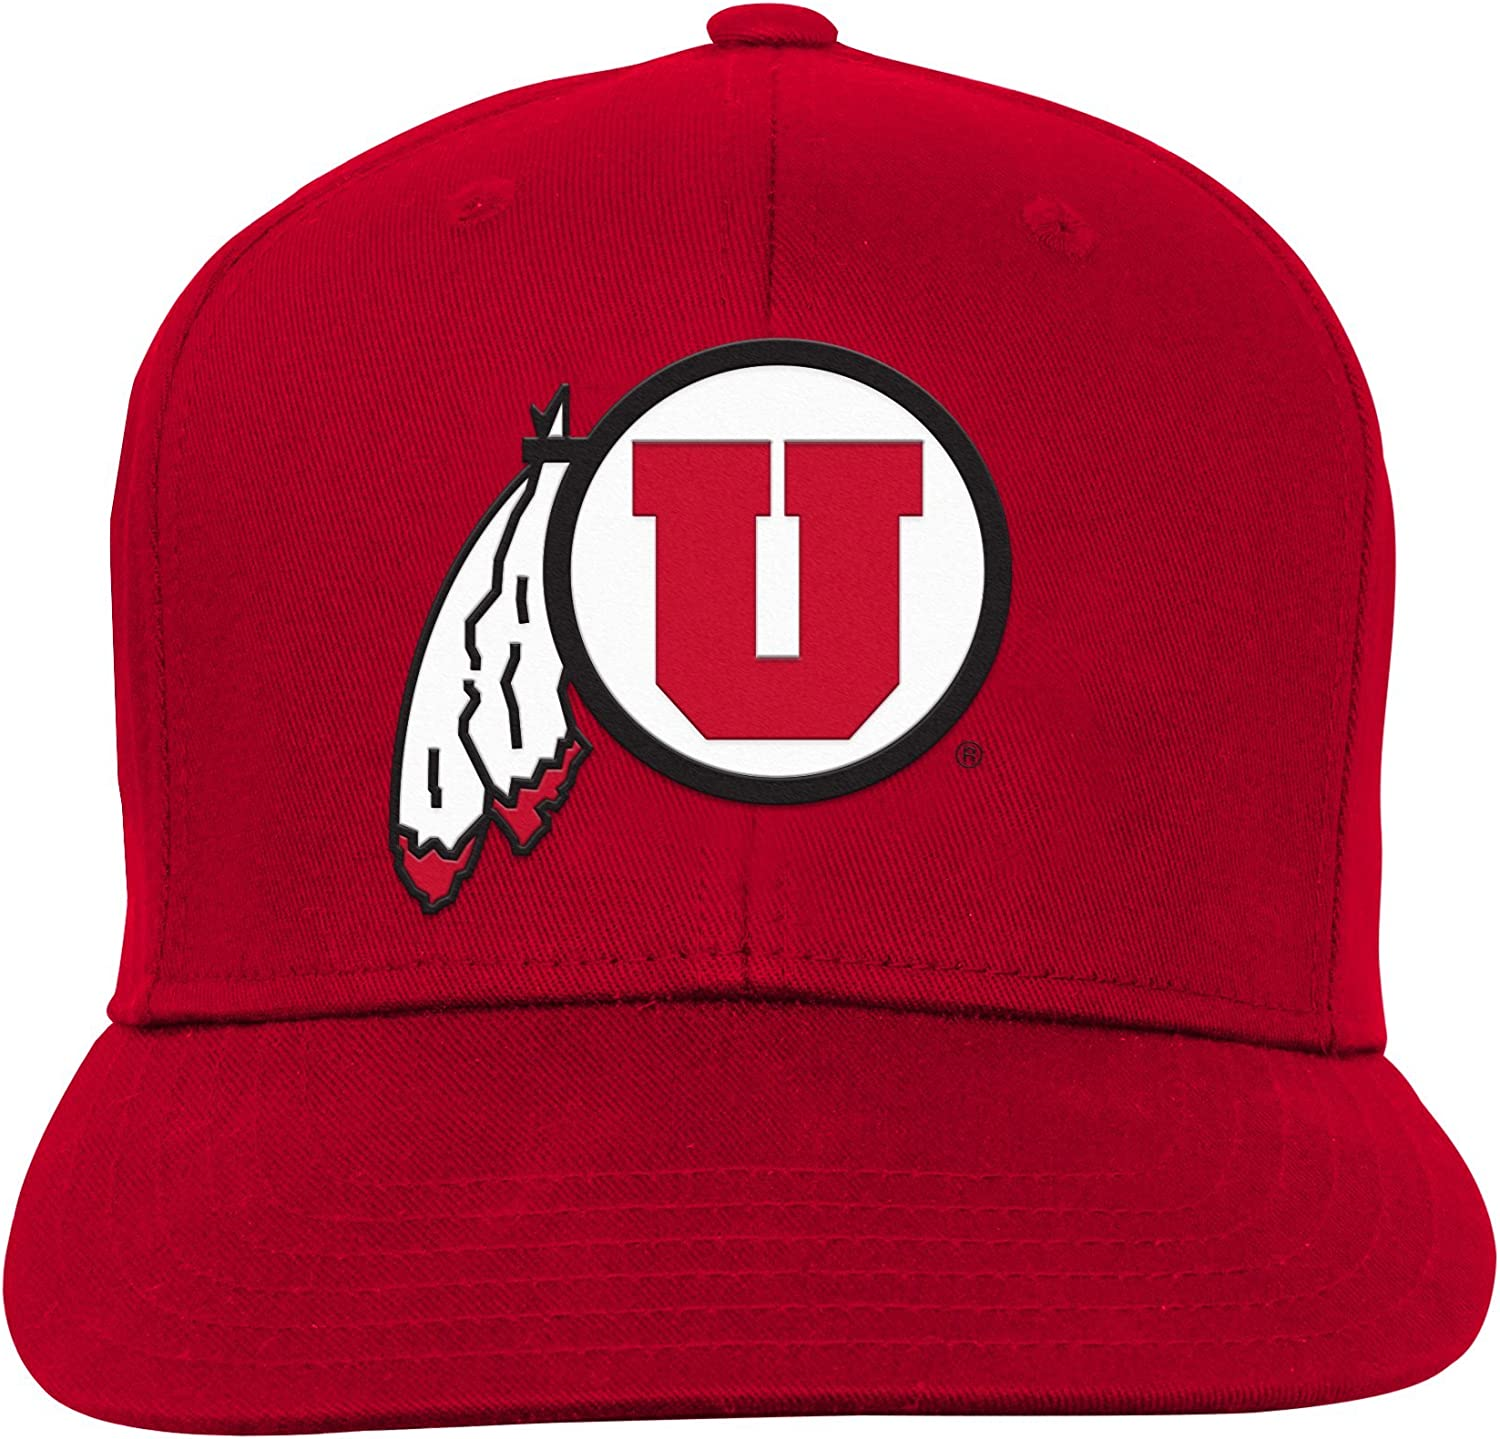 Light Blue Youth One Size NCAA Utah Utes Youth Outerstuff Team Flat Brim Snapback Hat